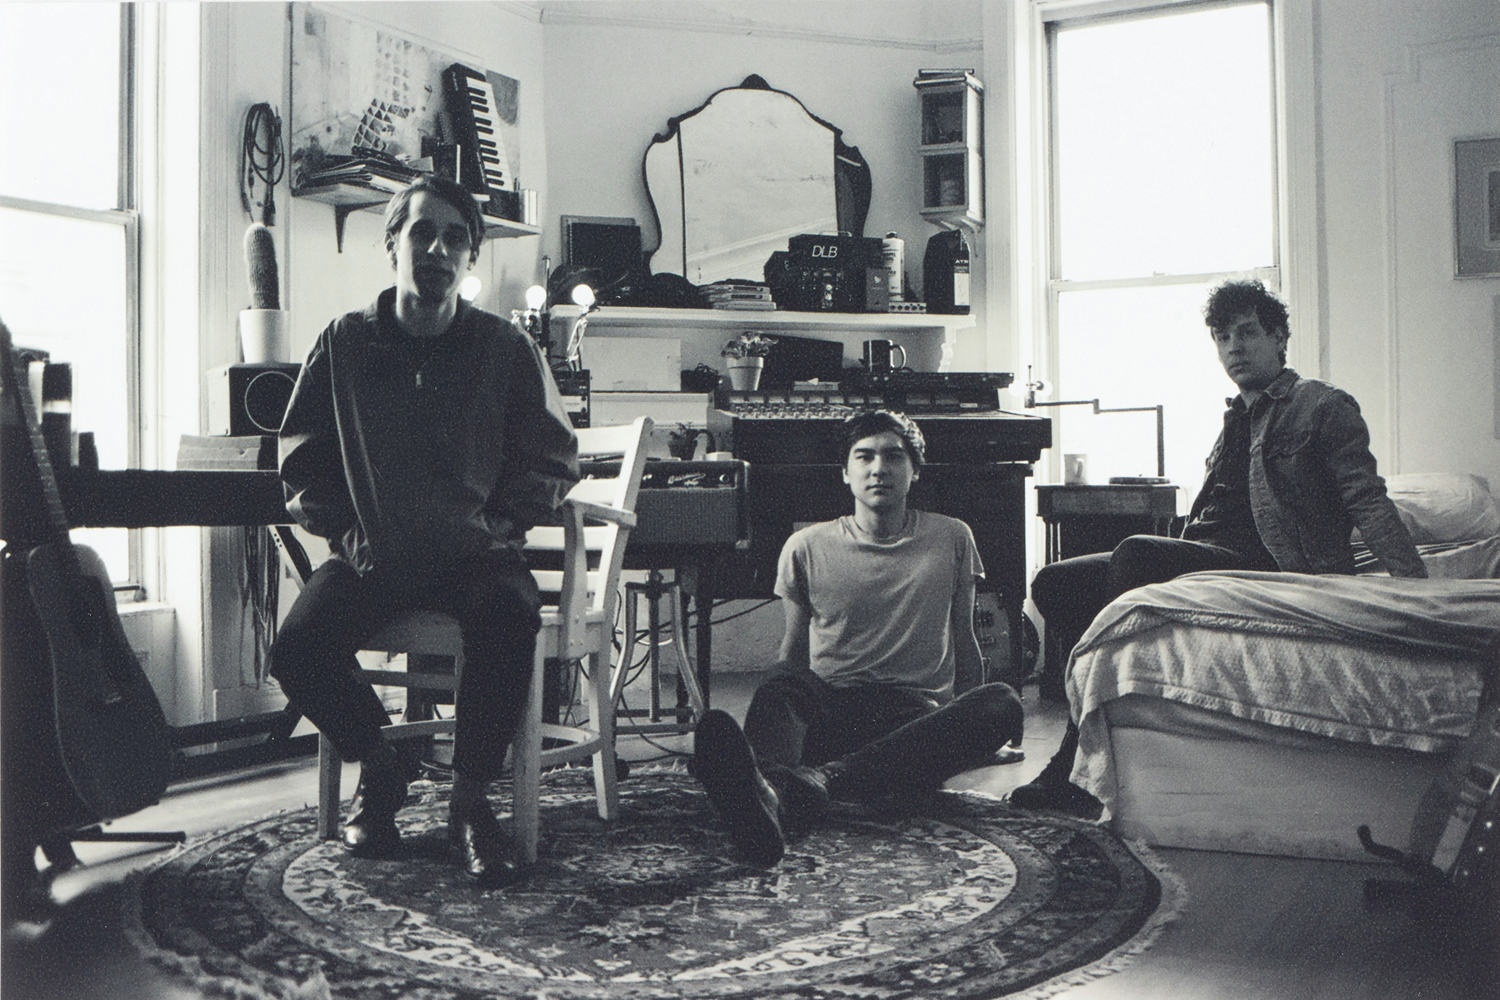 Captured Tracks Announces New Artist EZTV, will release 'Dust In The Sky' 7""